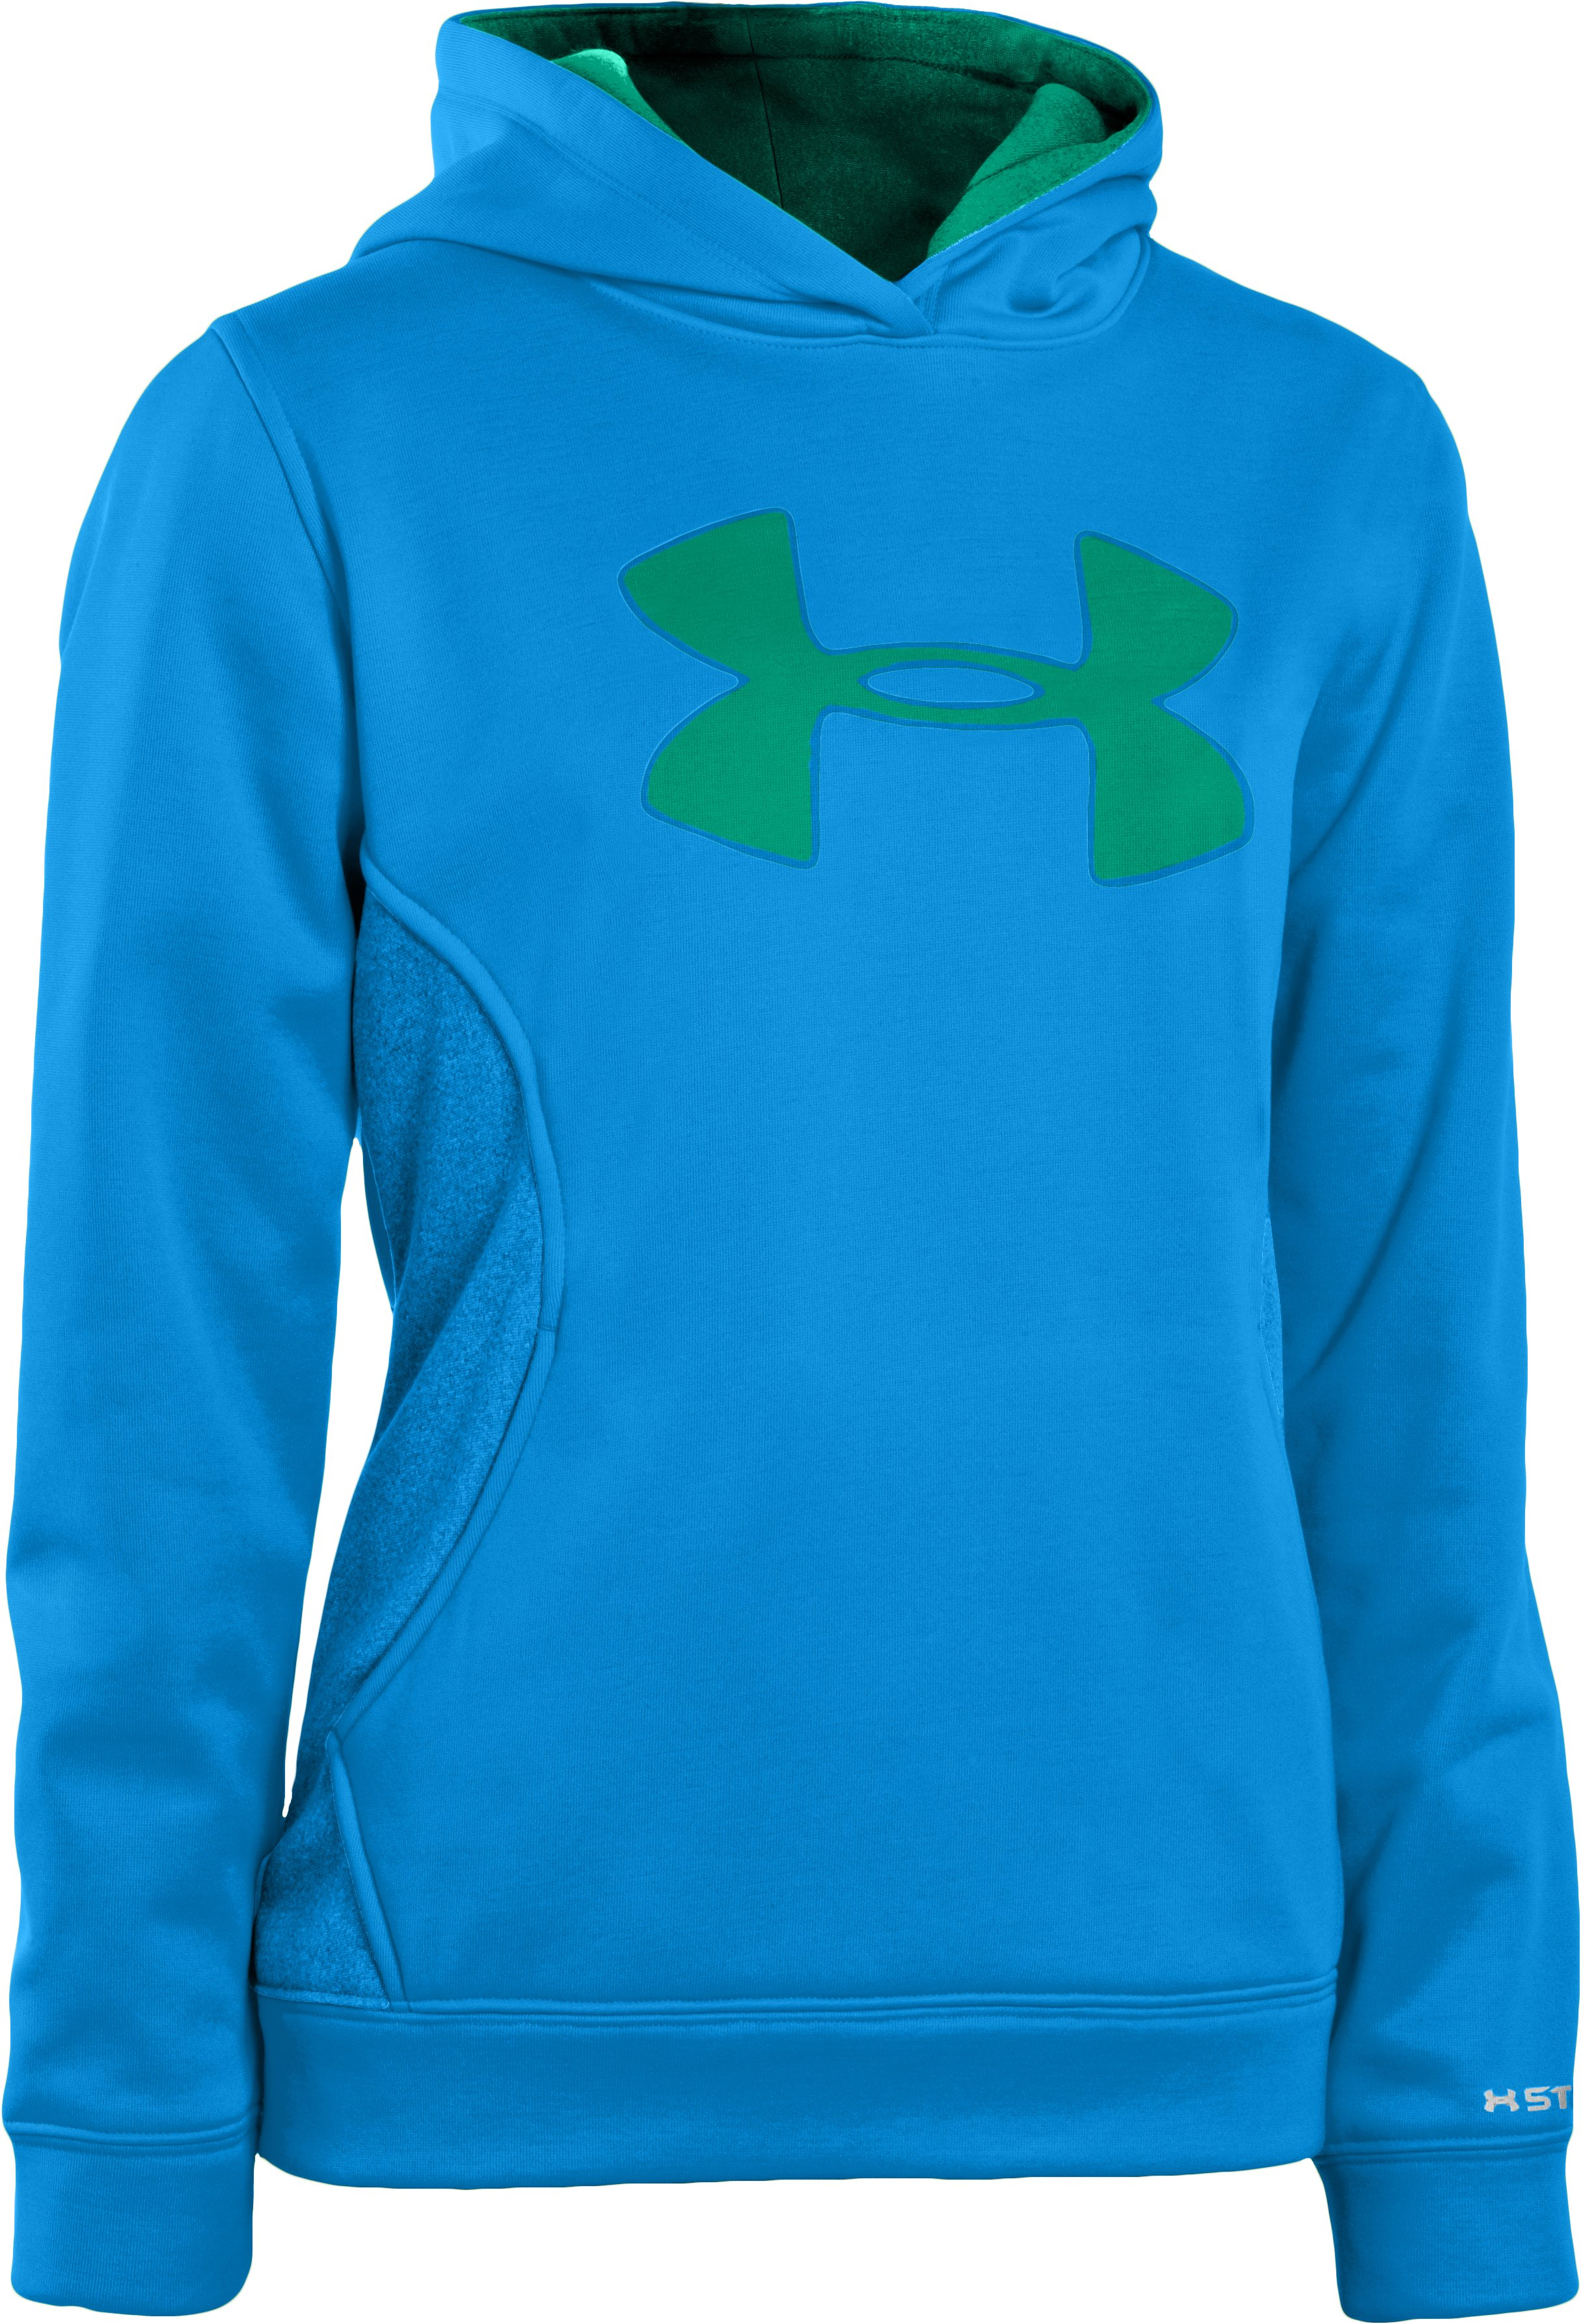 Girls' Armour® Fleece Storm Big Logo Hoodie, ELECTRIC BLUE, zoomed image